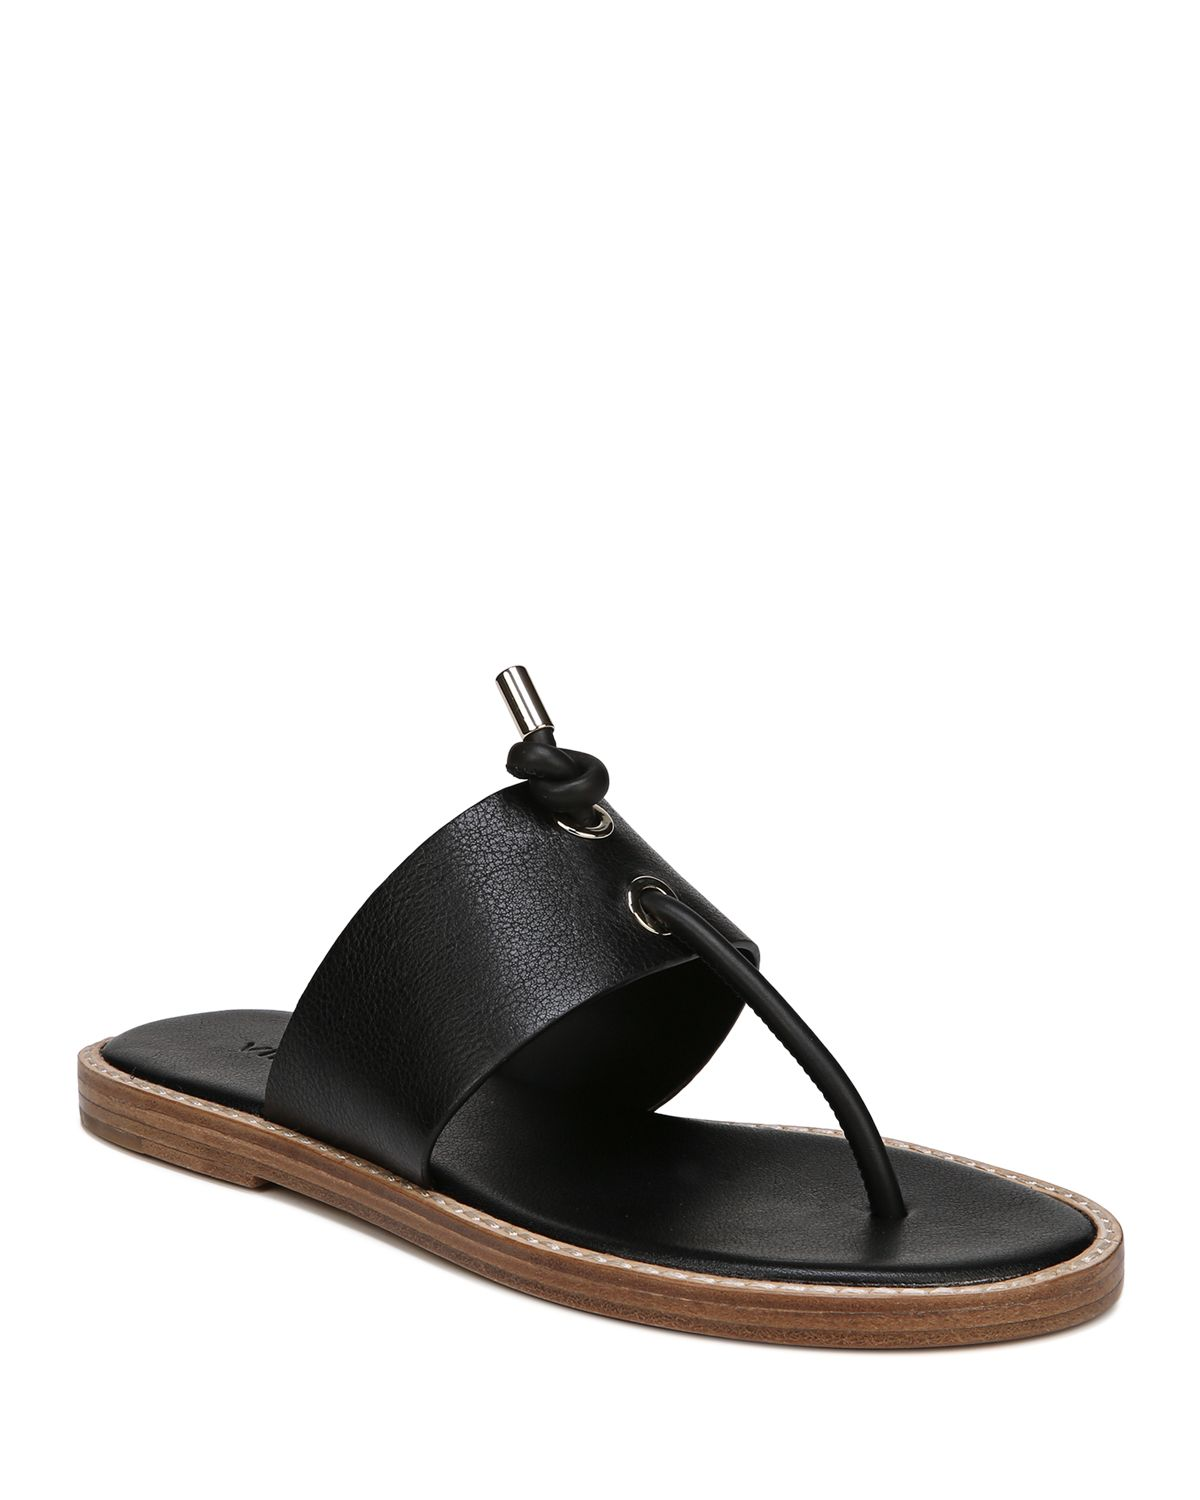 Vince Women's Caelan Leather Thong Sandals